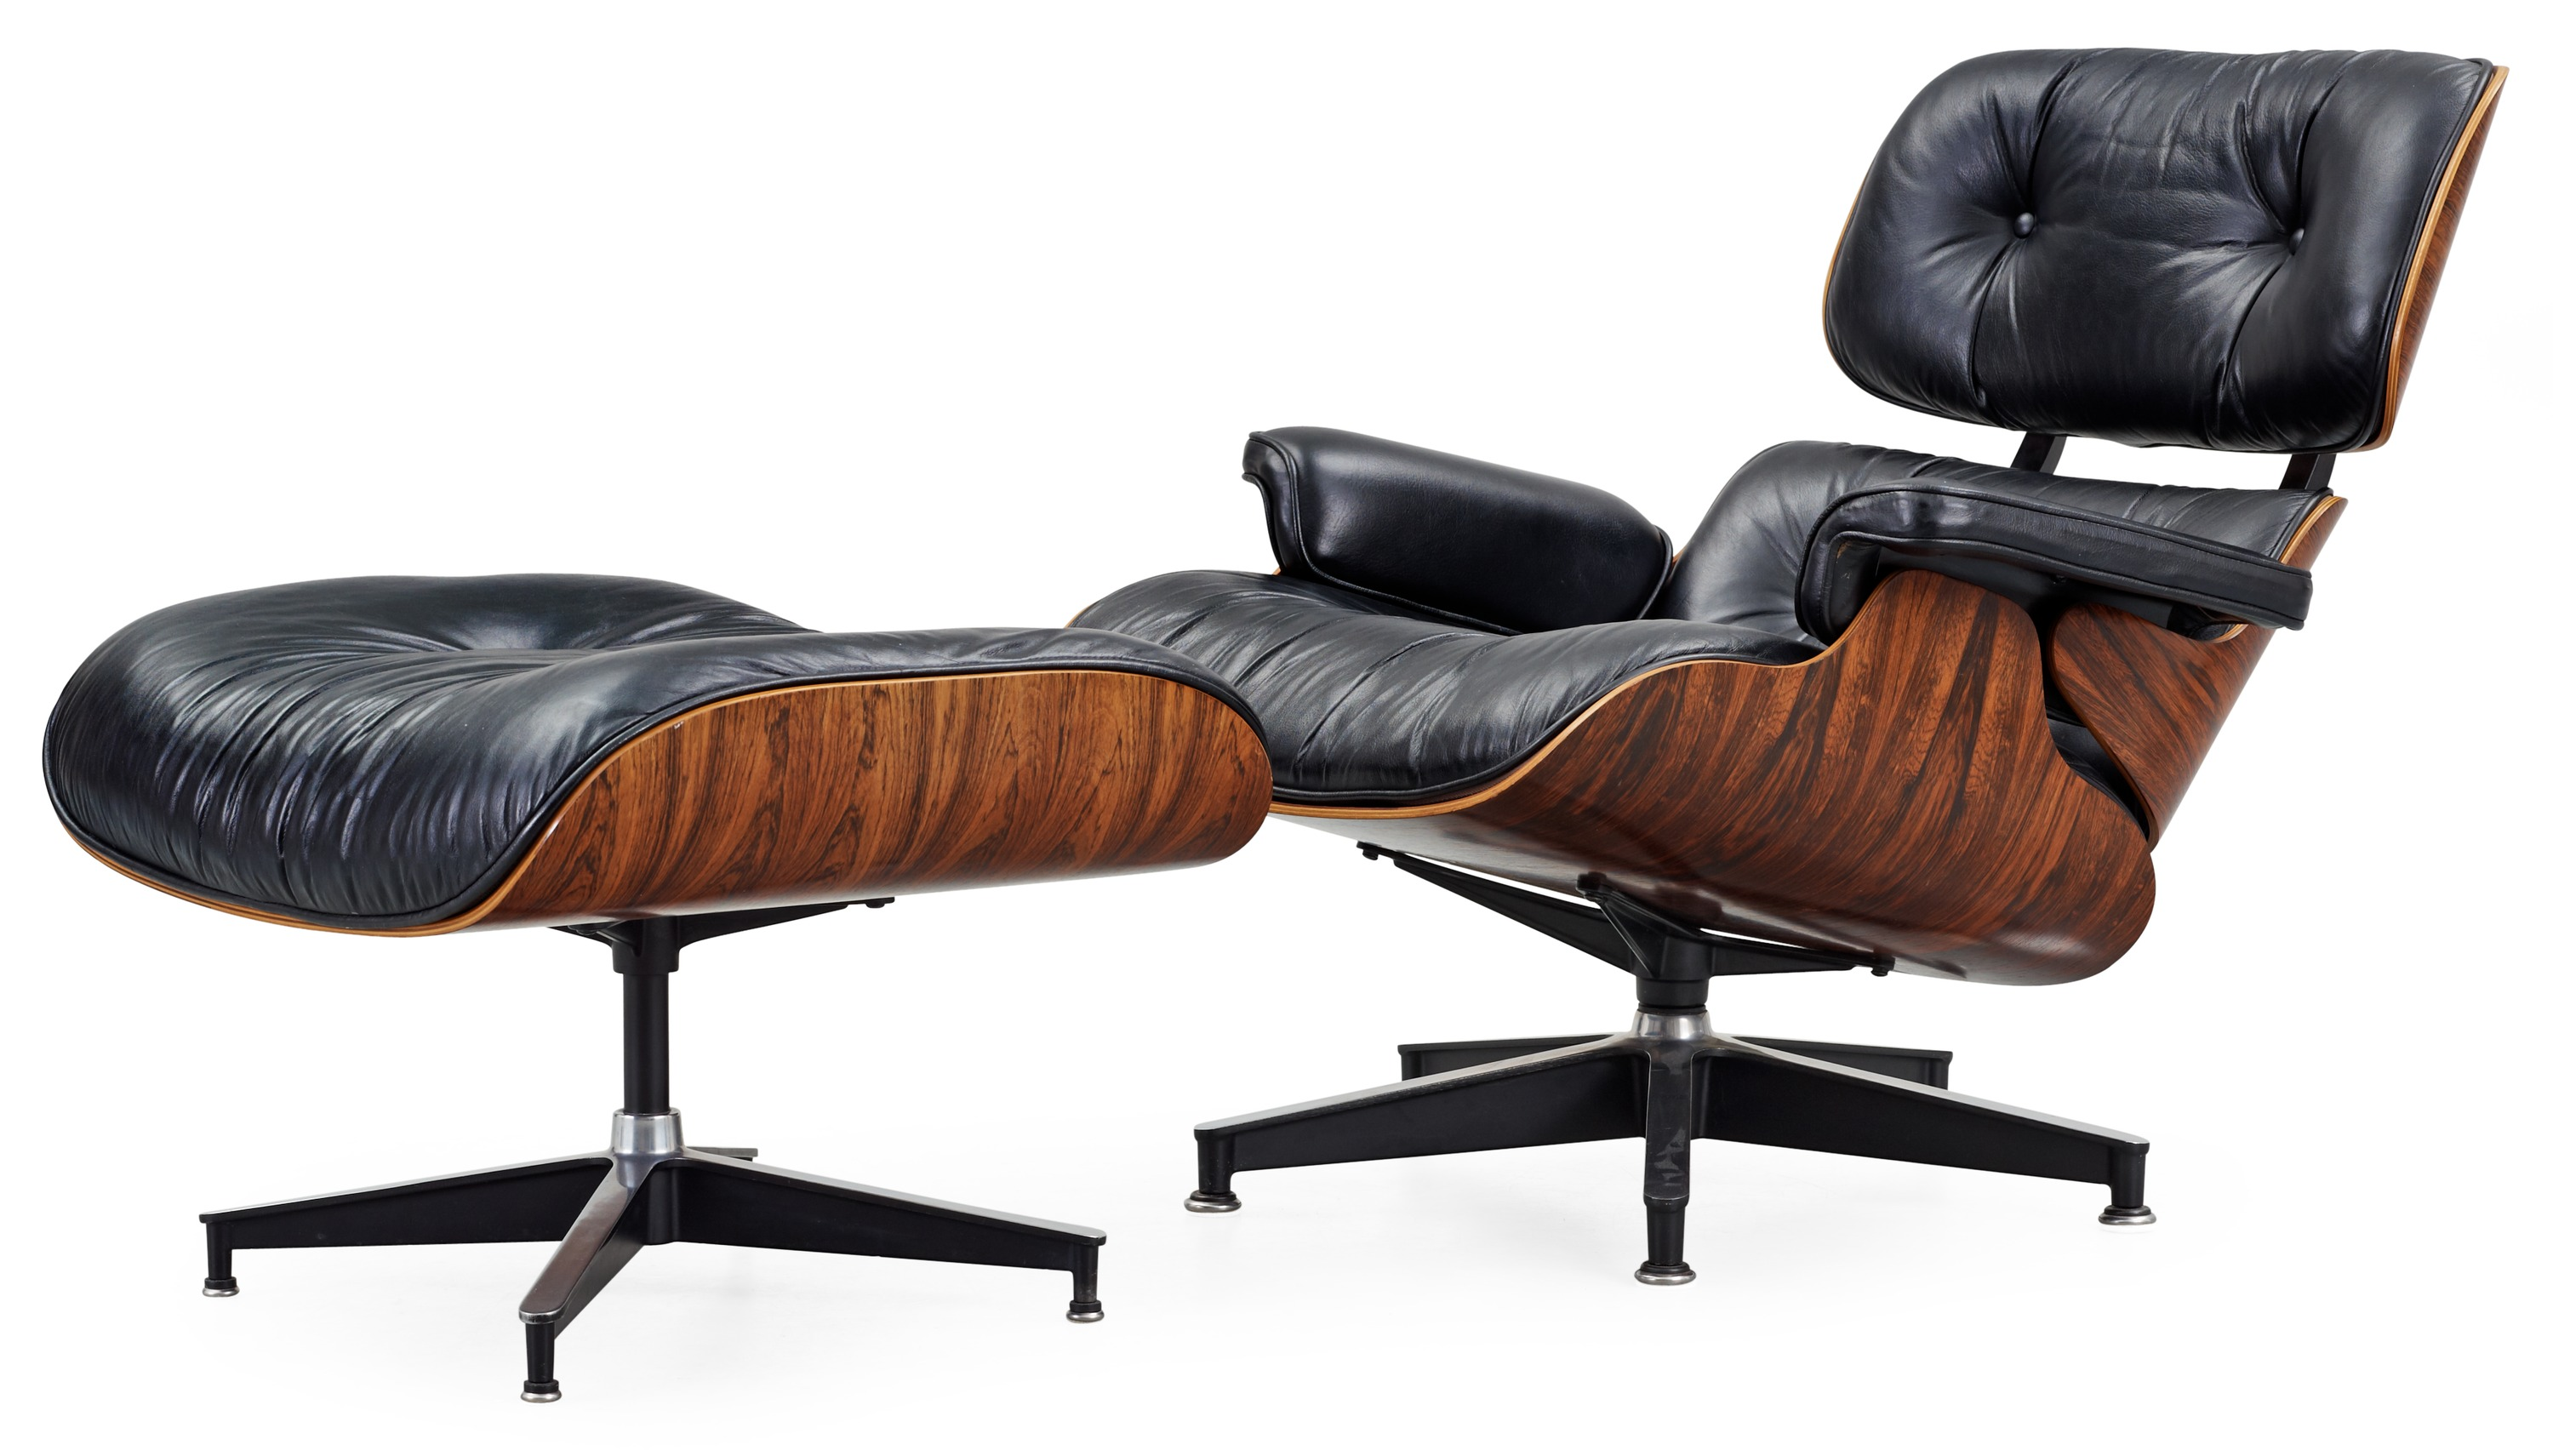 Charles and ray eames appraisal and valuation Find value of